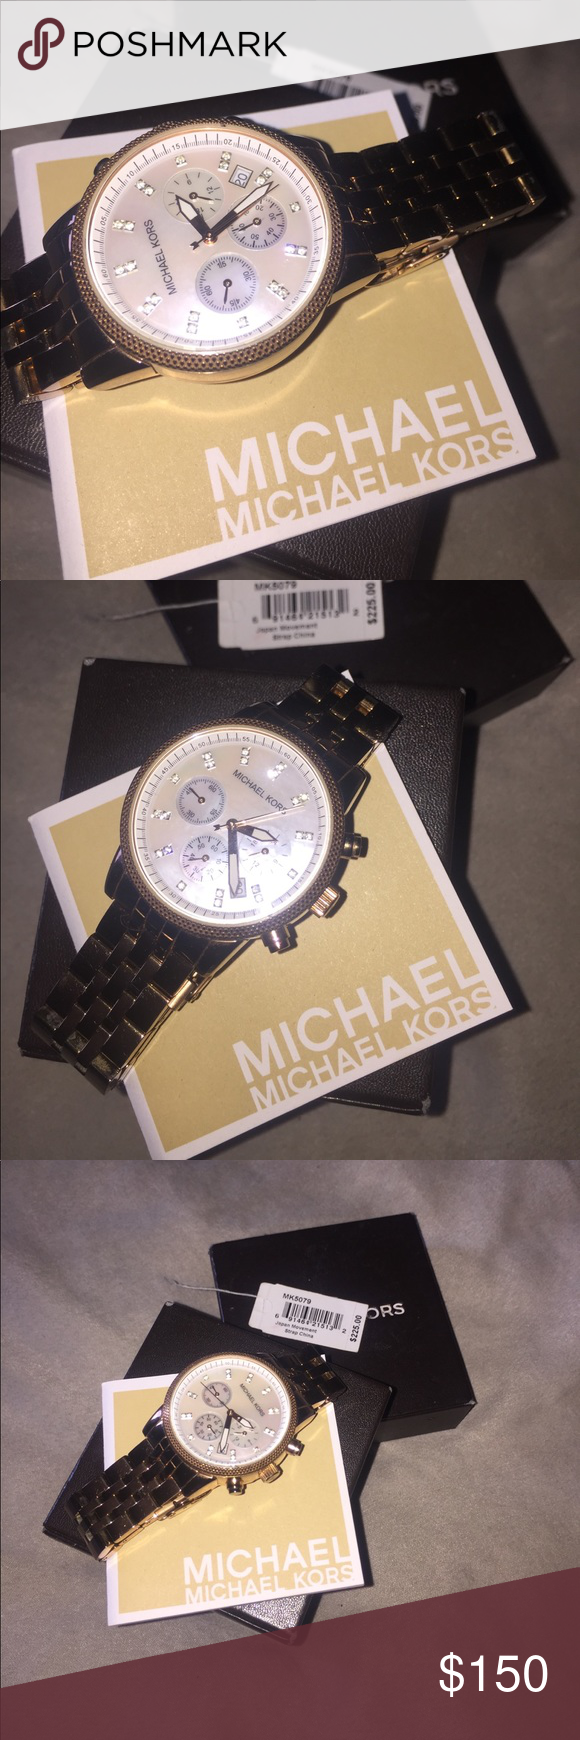 MICHAEL KORS WATCH This is a beautiful Rose gold Michael KORS watch. Used only a few times. There are minimal very light searches as shown in the pictures. This was a gift but is to large for my wrist. Michael Kors Accessories Watches